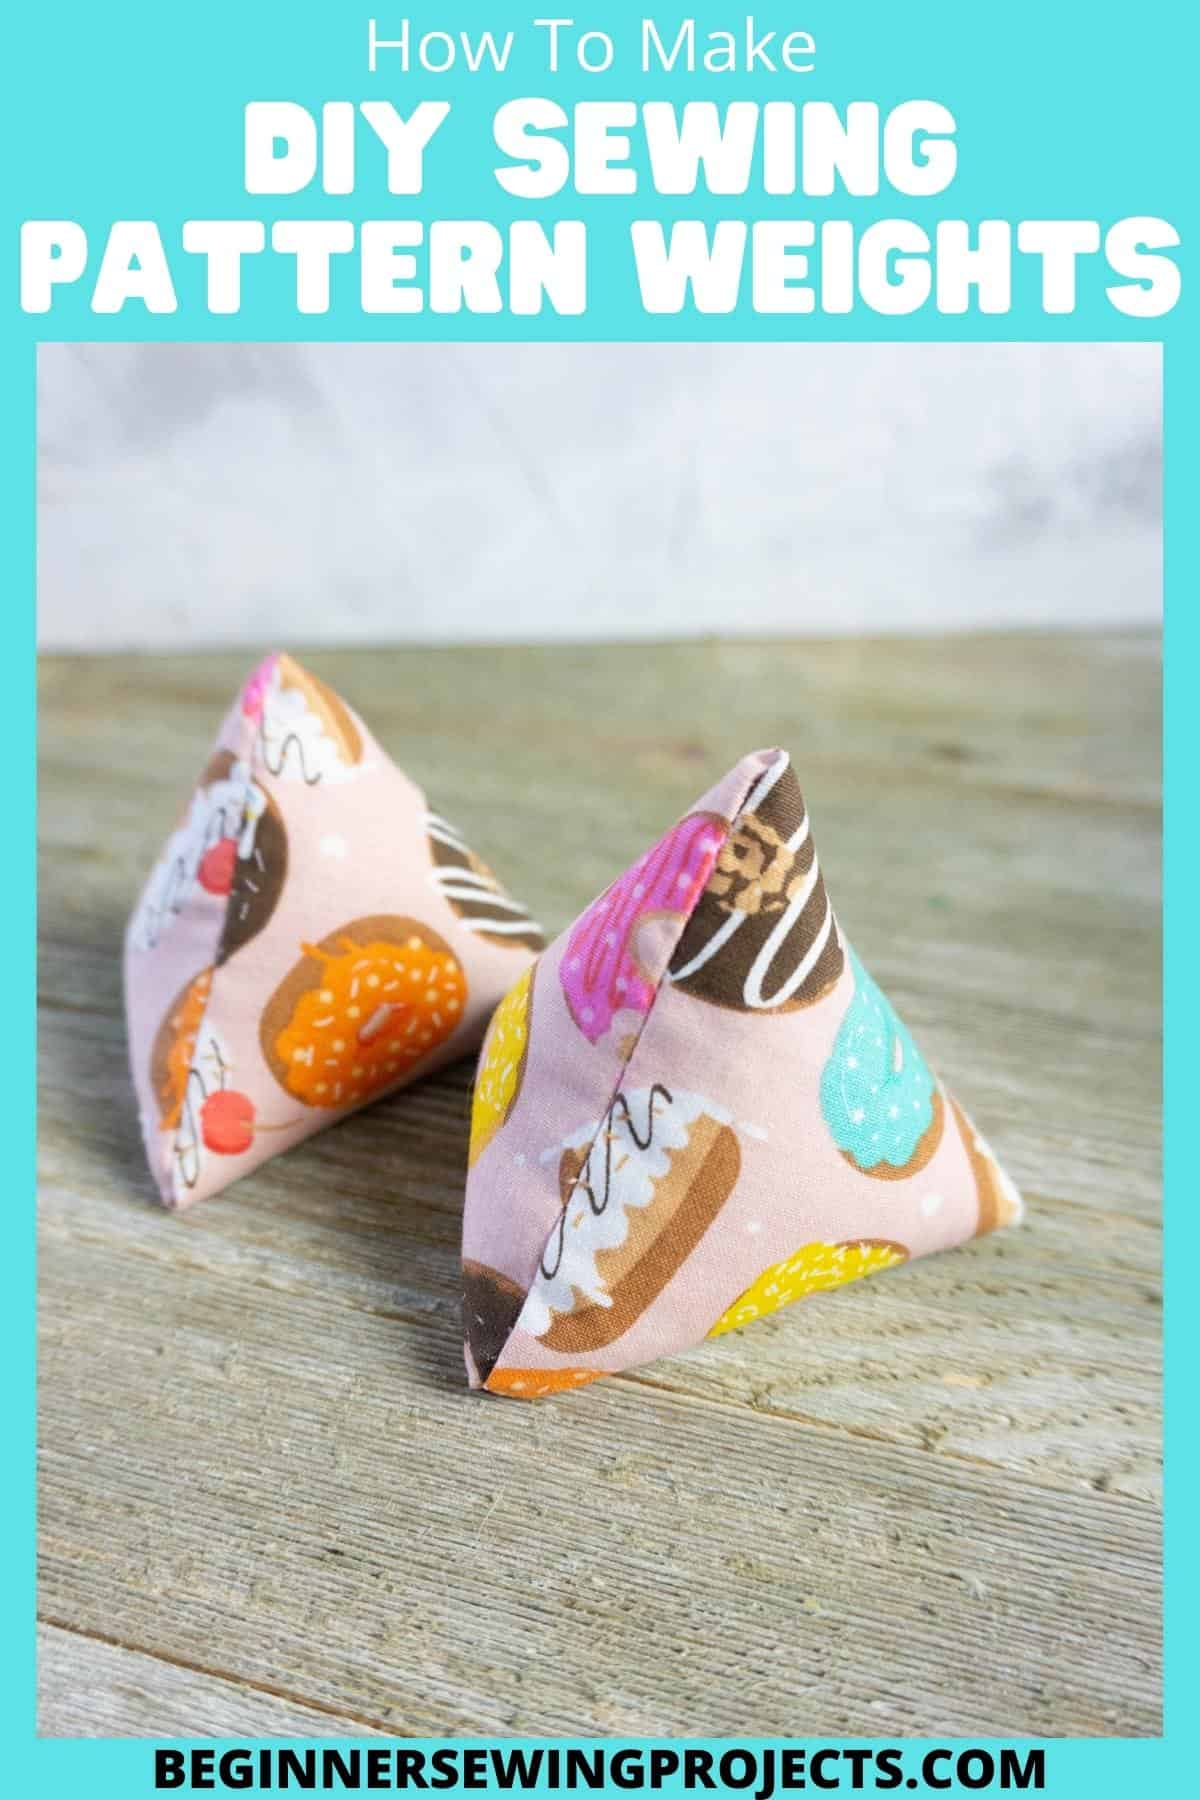 How To Make DIY Sewing Pattern Weights